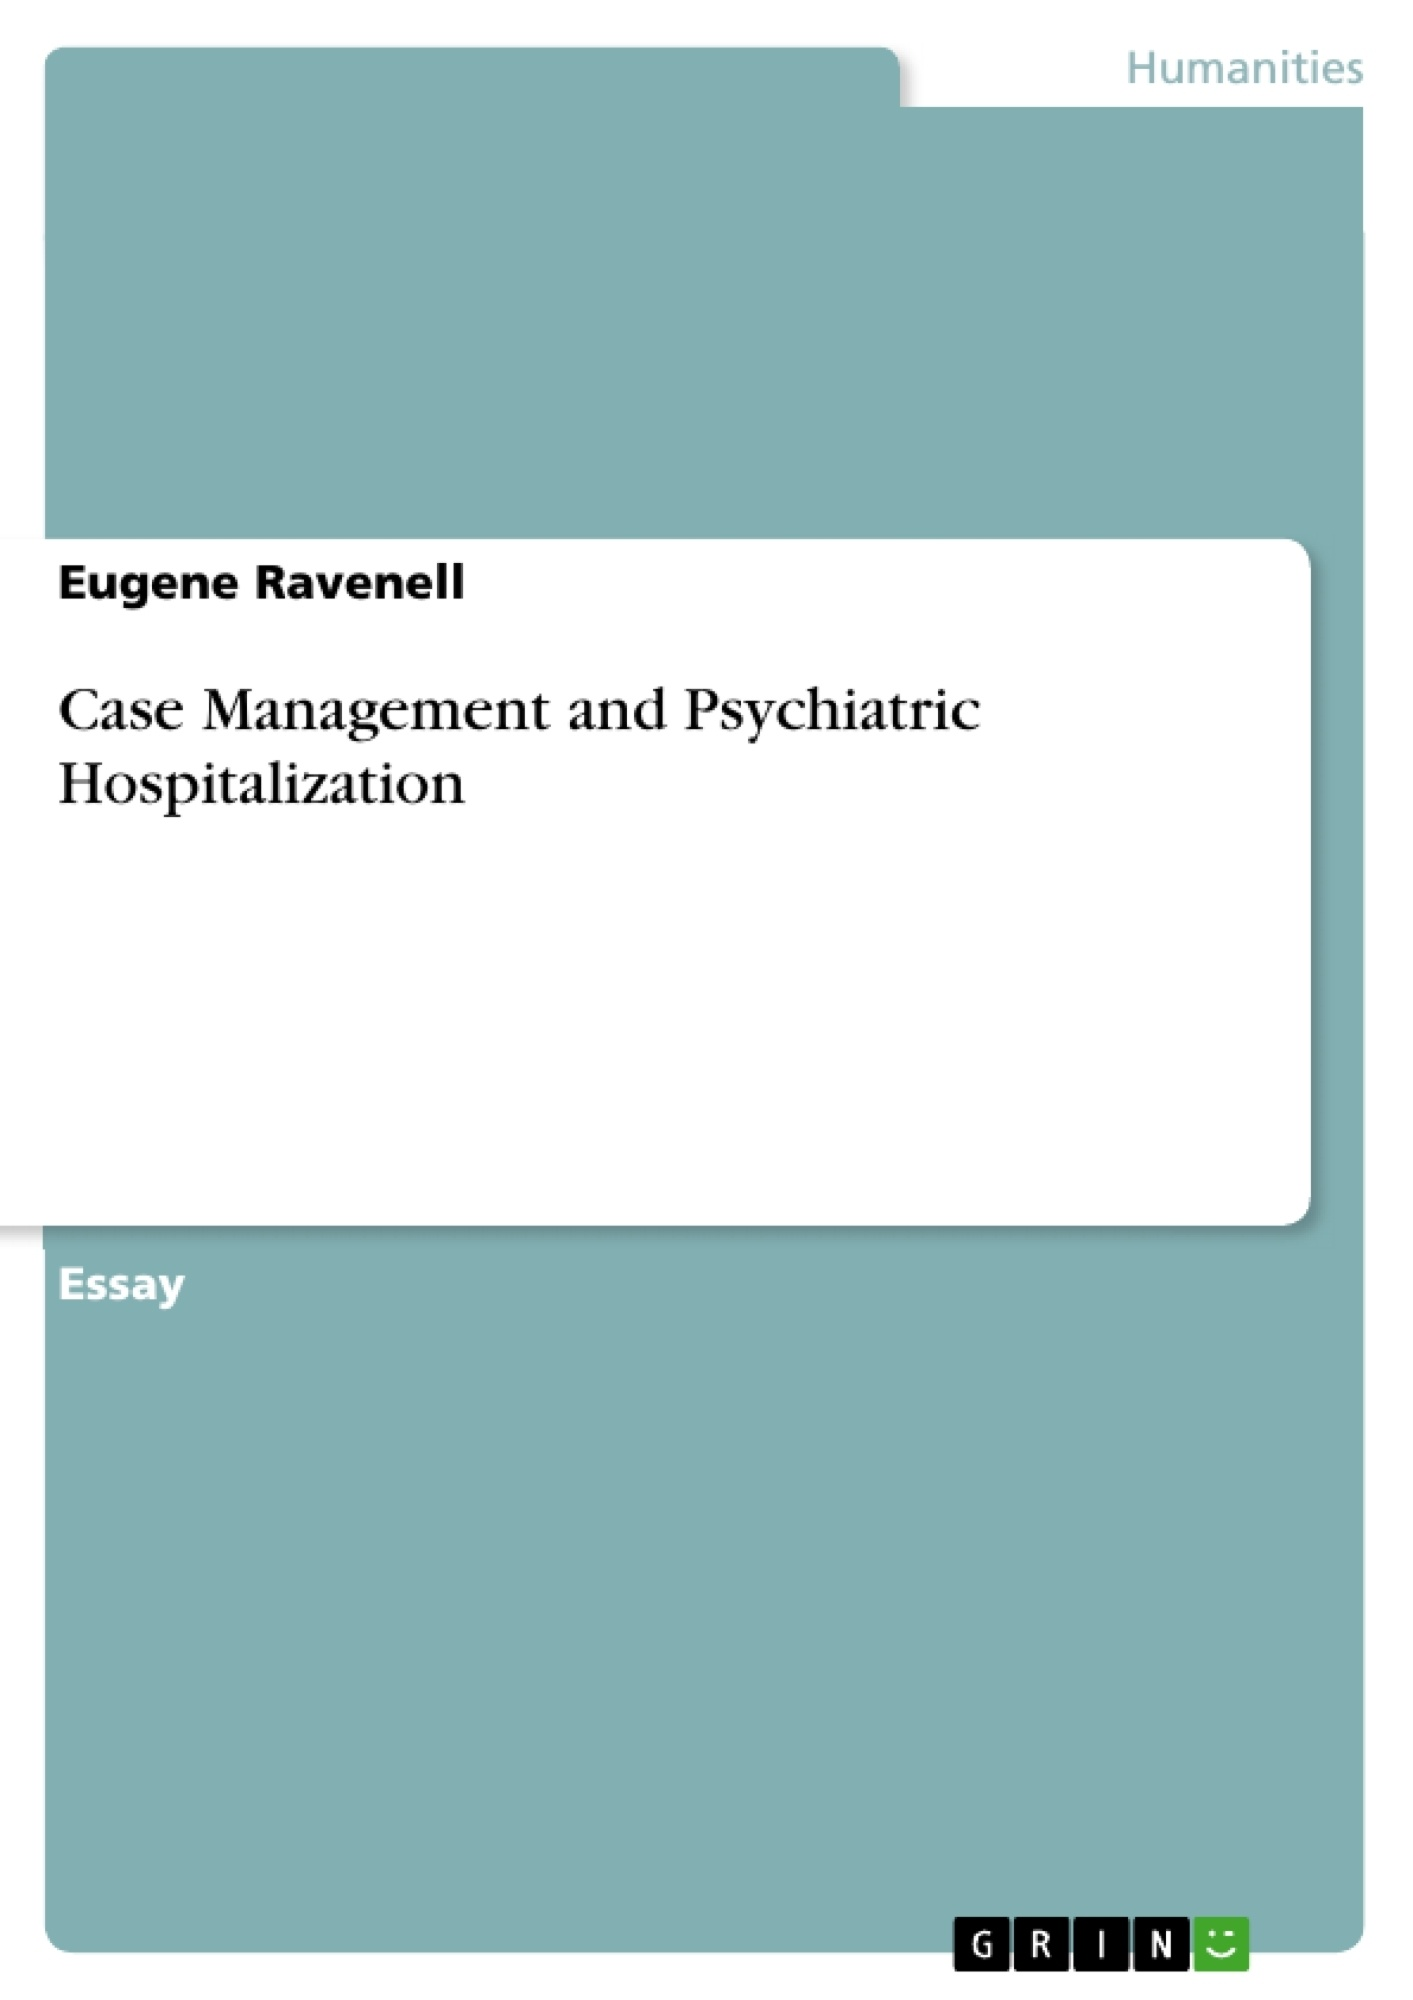 Title: Case Management and Psychiatric Hospitalization